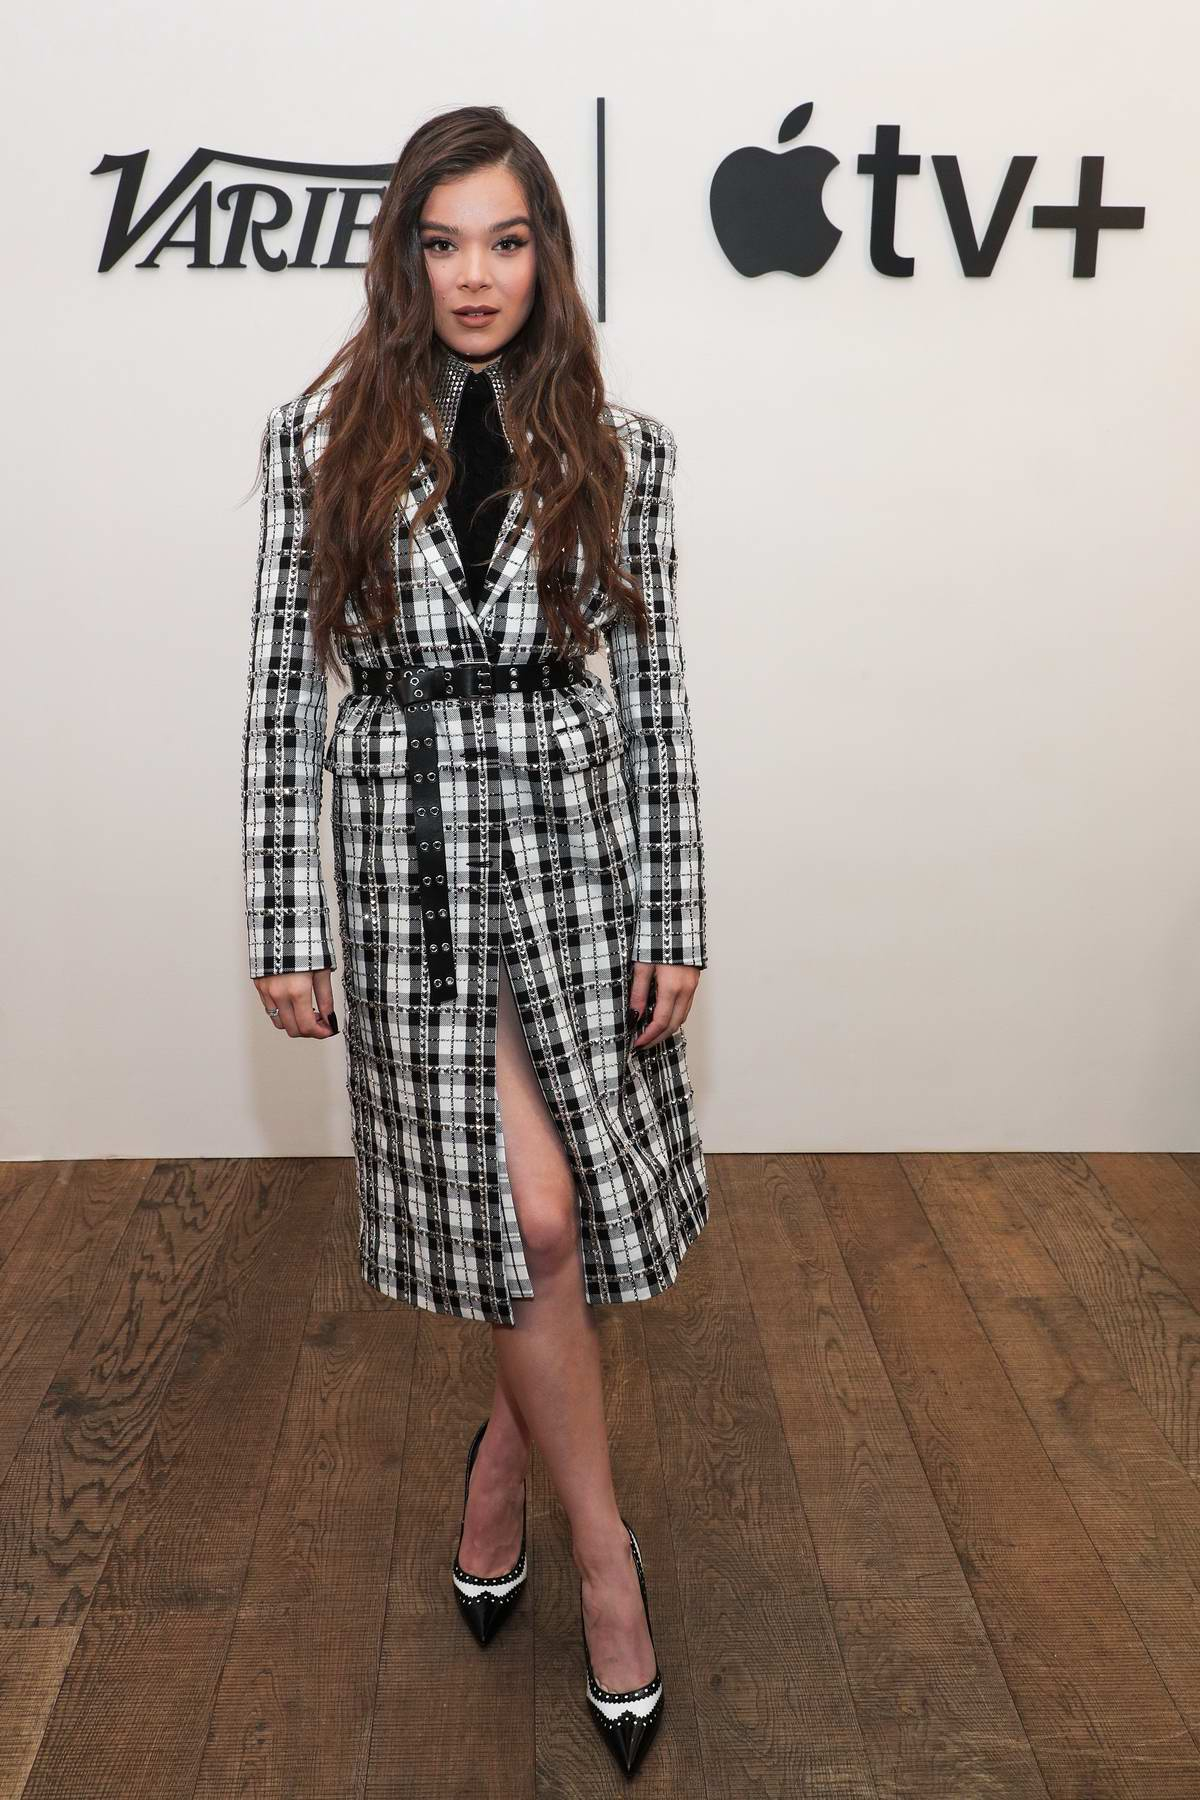 Hailee Steinfeld attends Variety x Apple TV+ Collaborations Event in Los Angeles